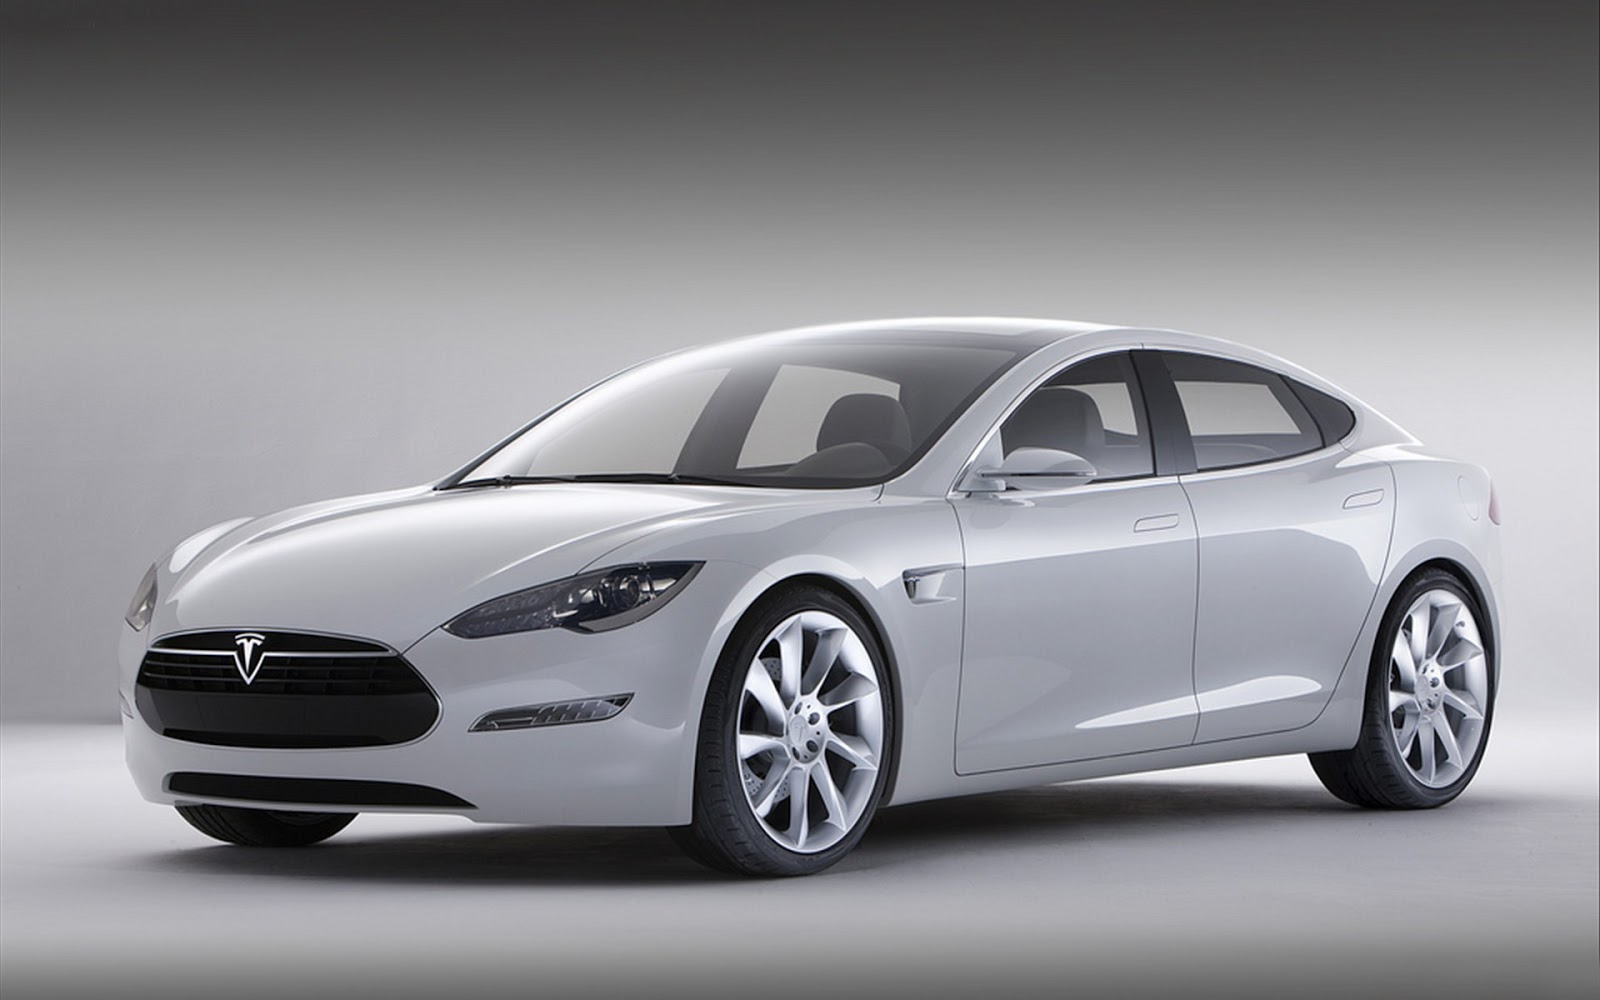 HD WALLPAPERS tesla Cars models 2013 latest wallpapers 1600x1000